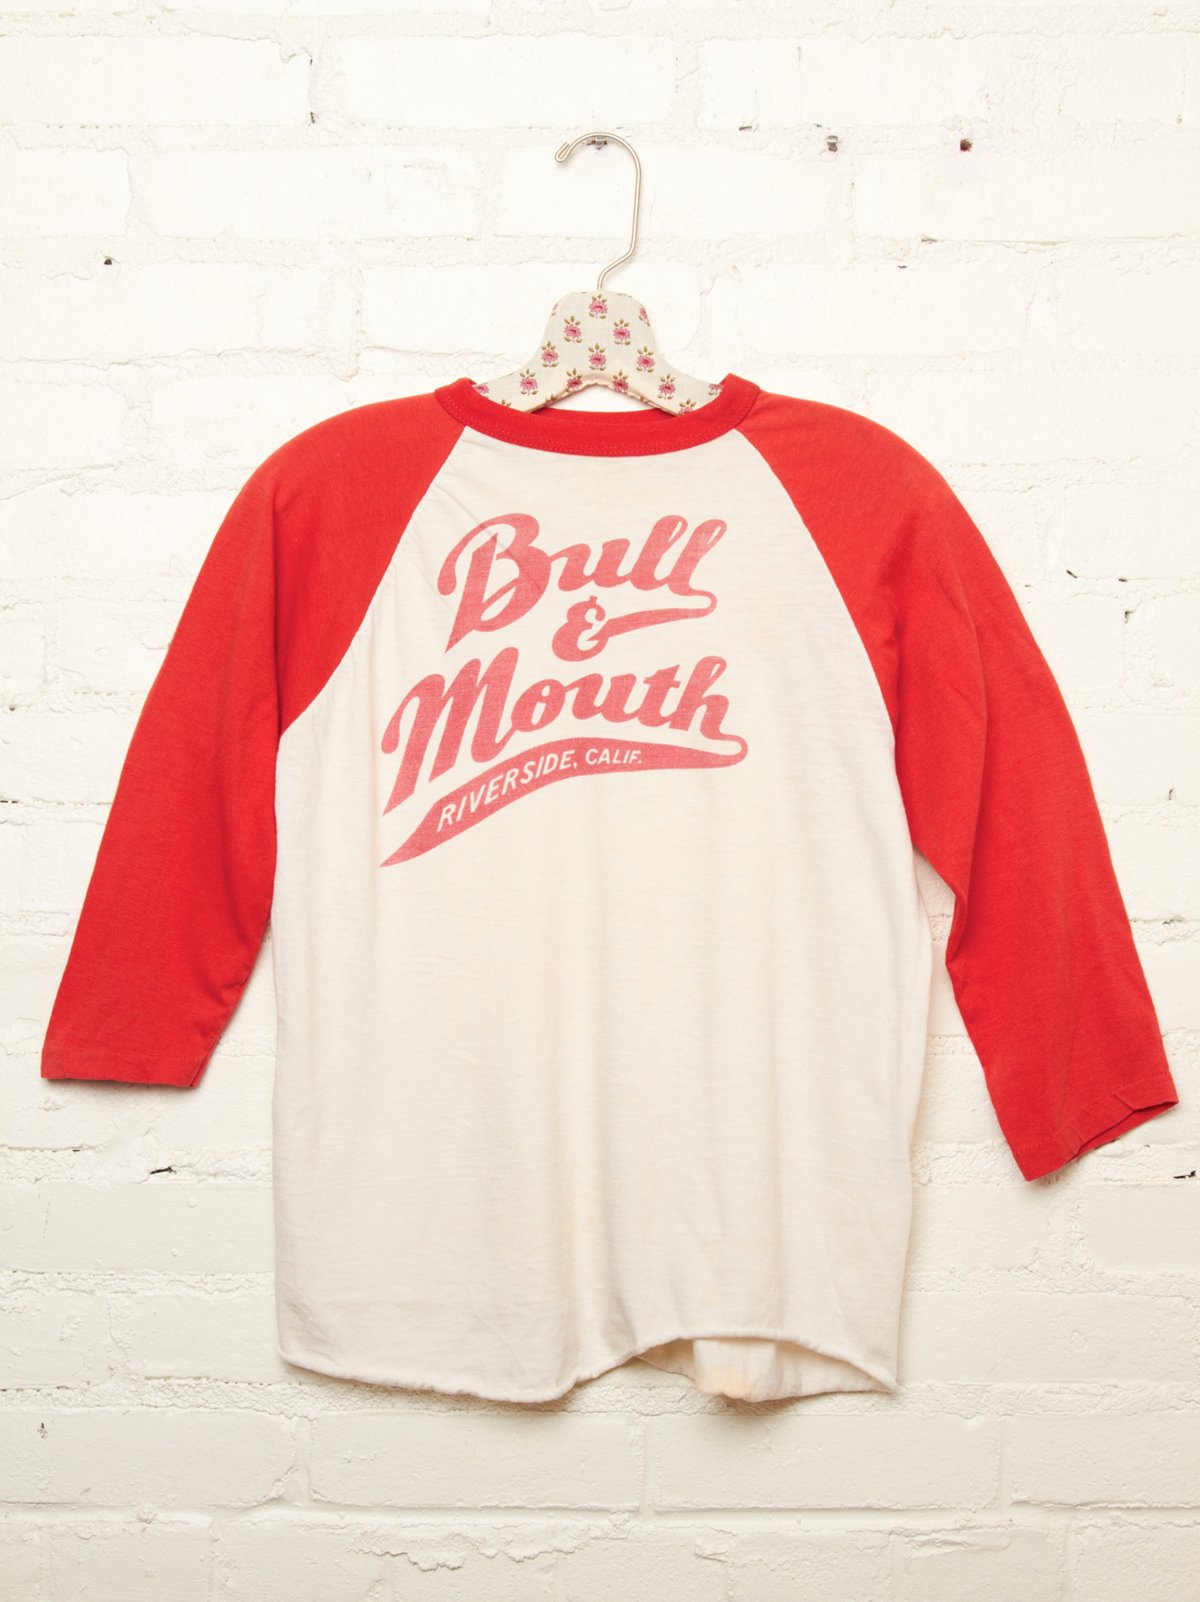 Vintage Bull and Mouth Tee